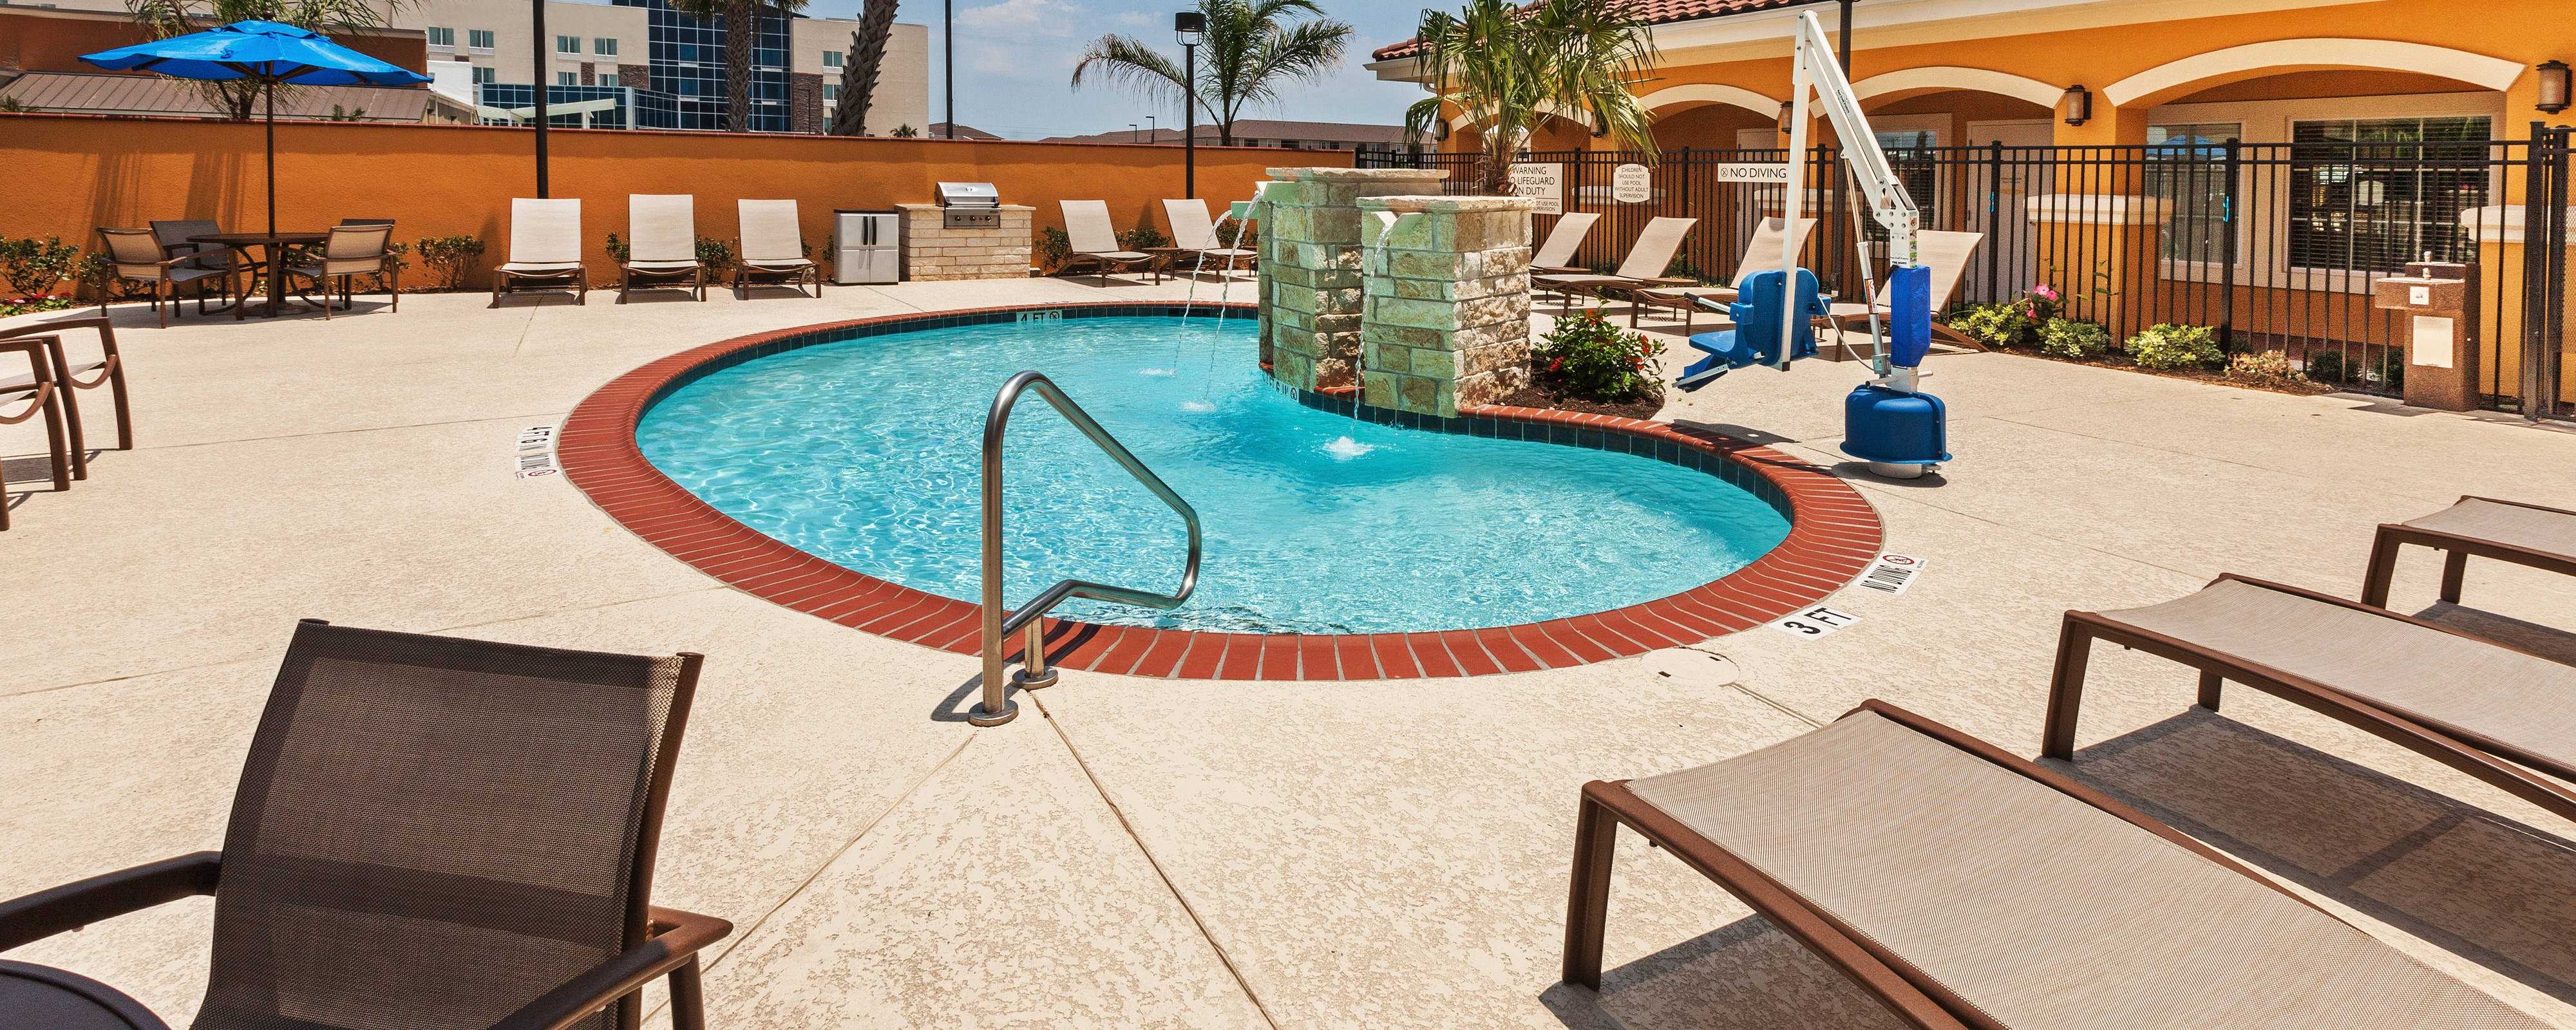 Outdoor Pools in Corpus Christi, TX